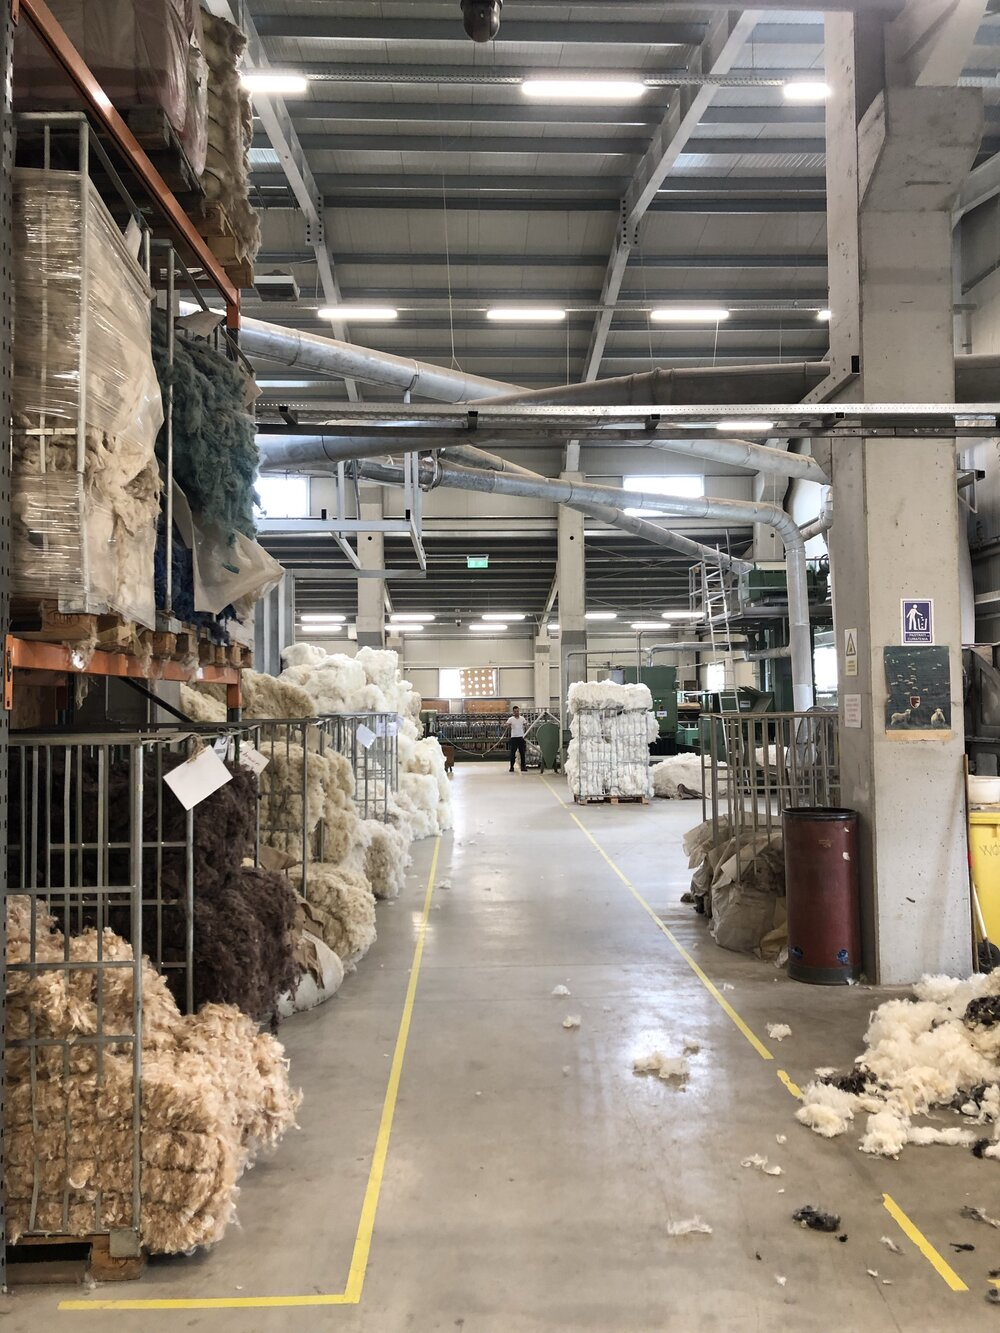 Where the wool is cleaned and prepared